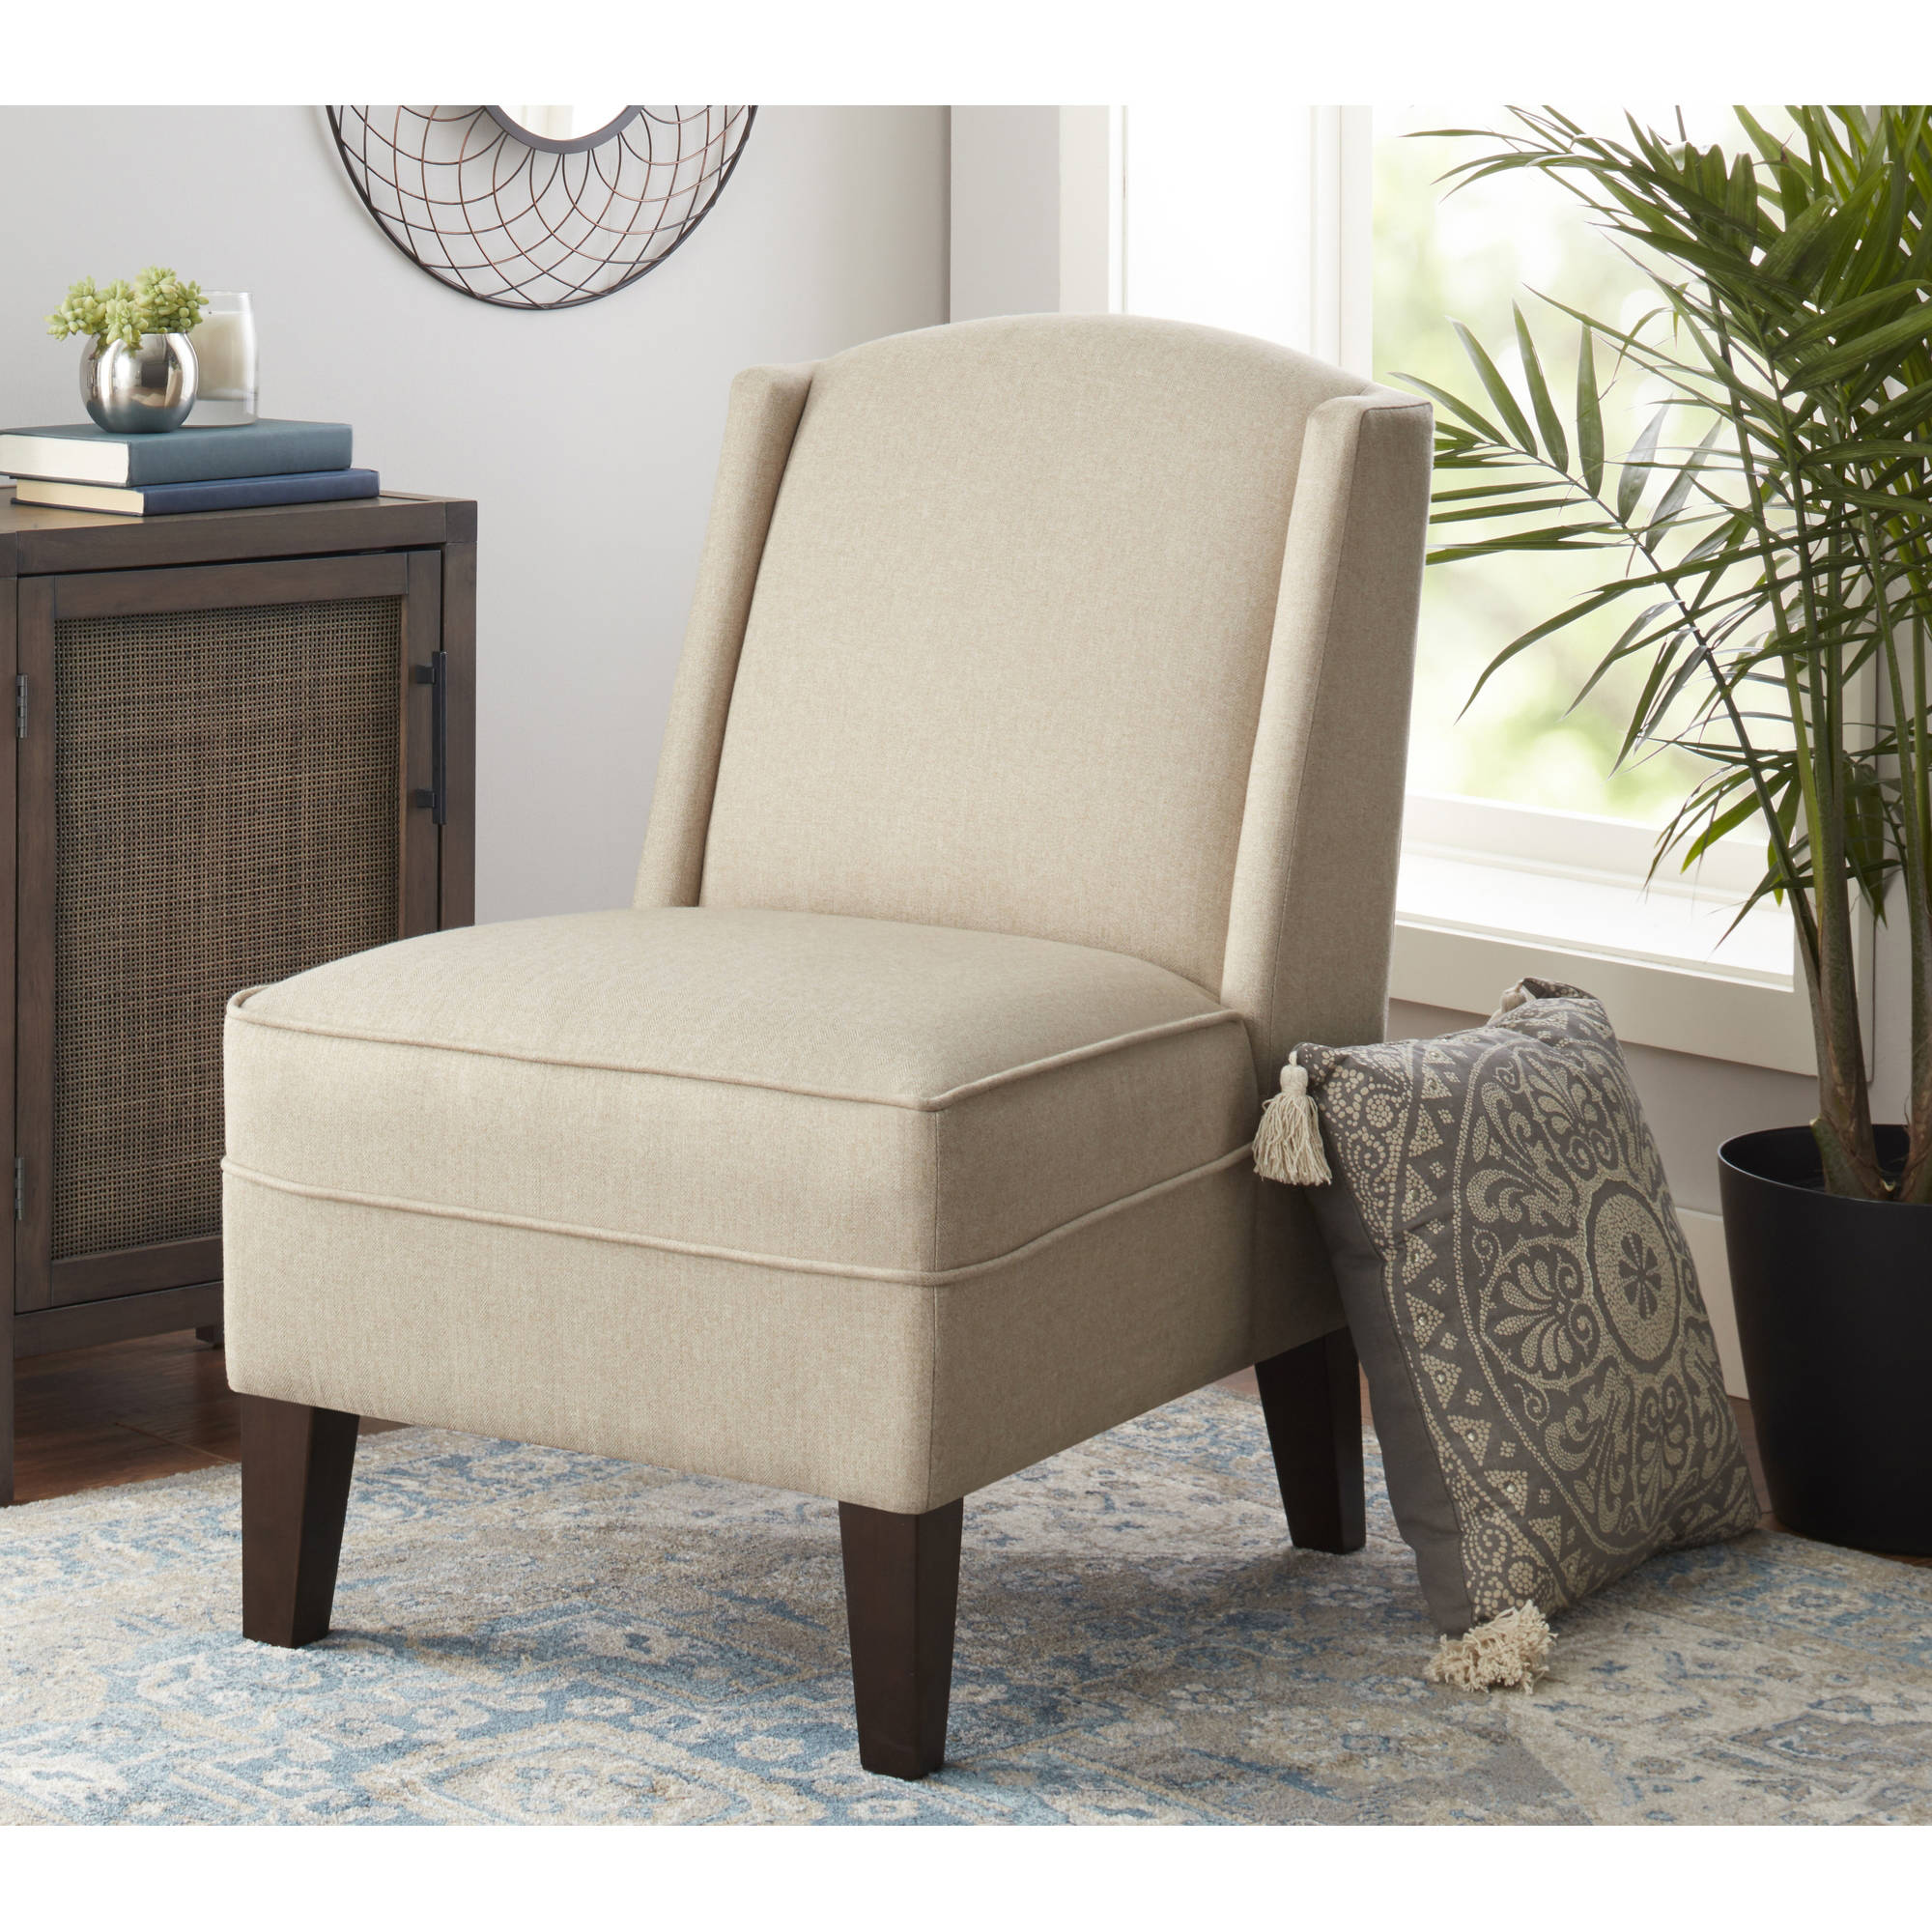 Better Homes & Gardens Kline Accent Chair, Multiple Colors